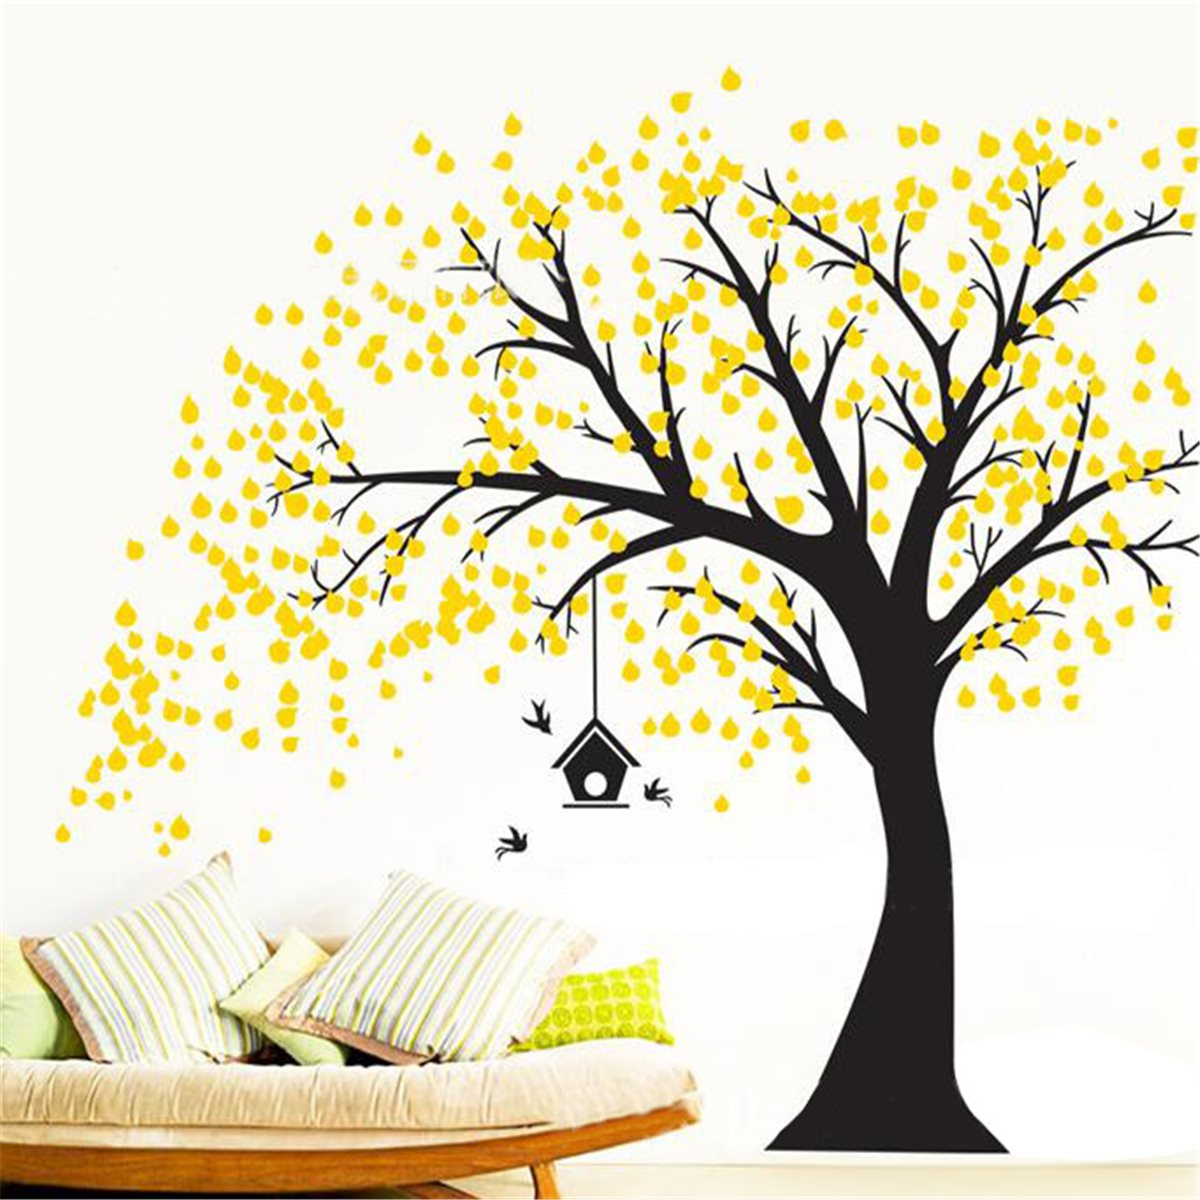 Pvc green yellow tree wall stickers vinyl art wall decals - Removable wall stickers living room ...